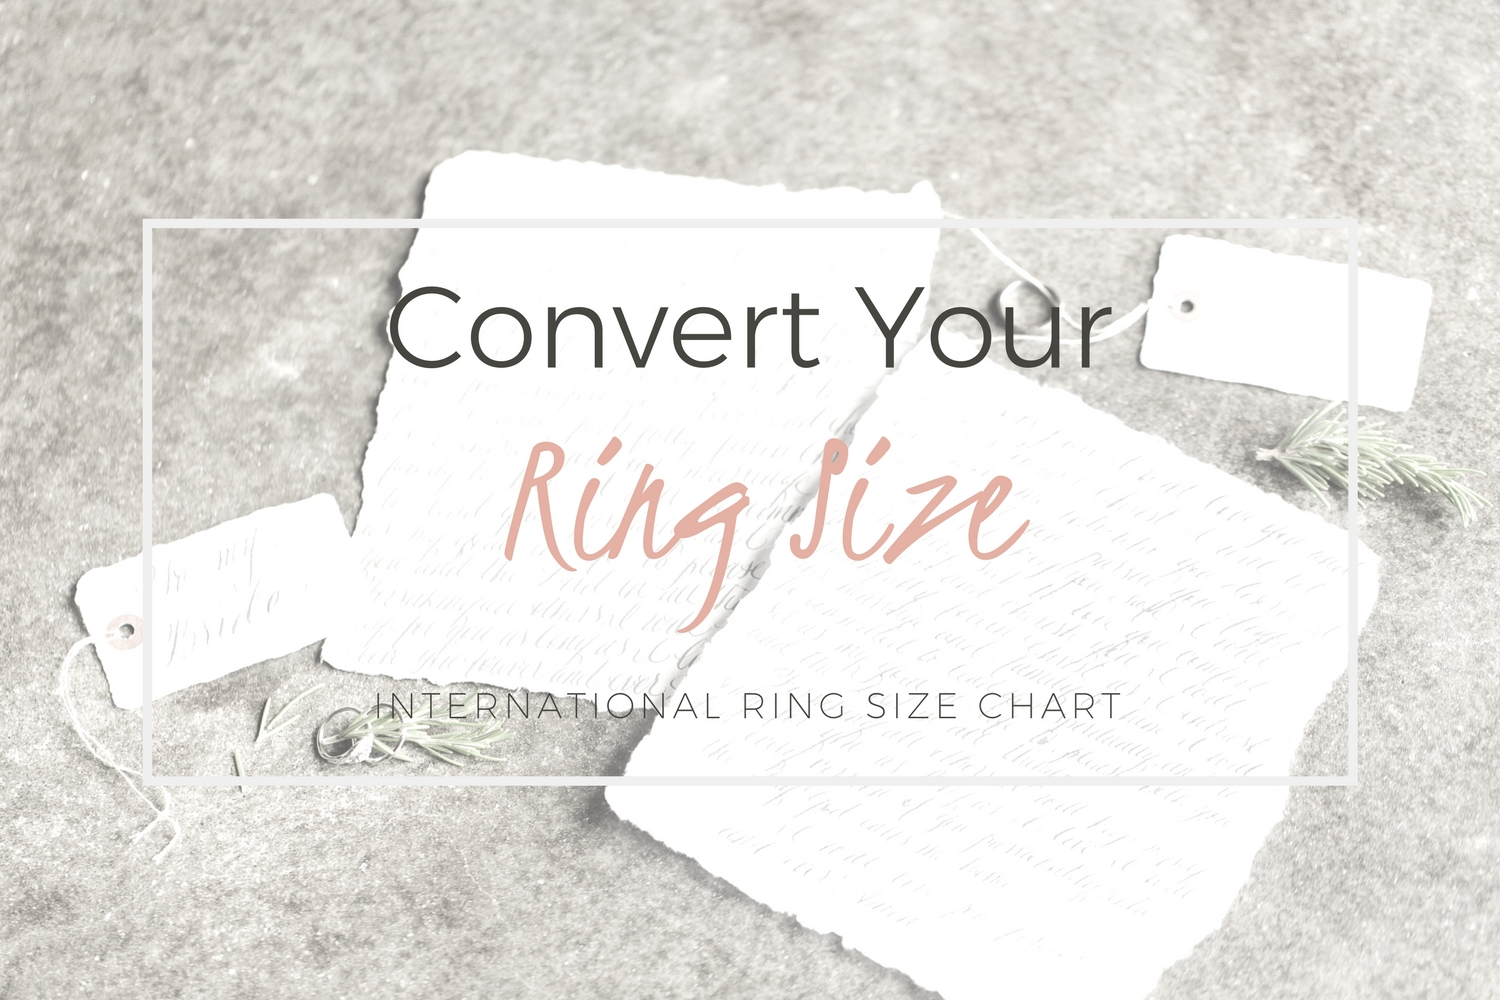 Convert Your Ring Size International Ring Size Conversion Chart